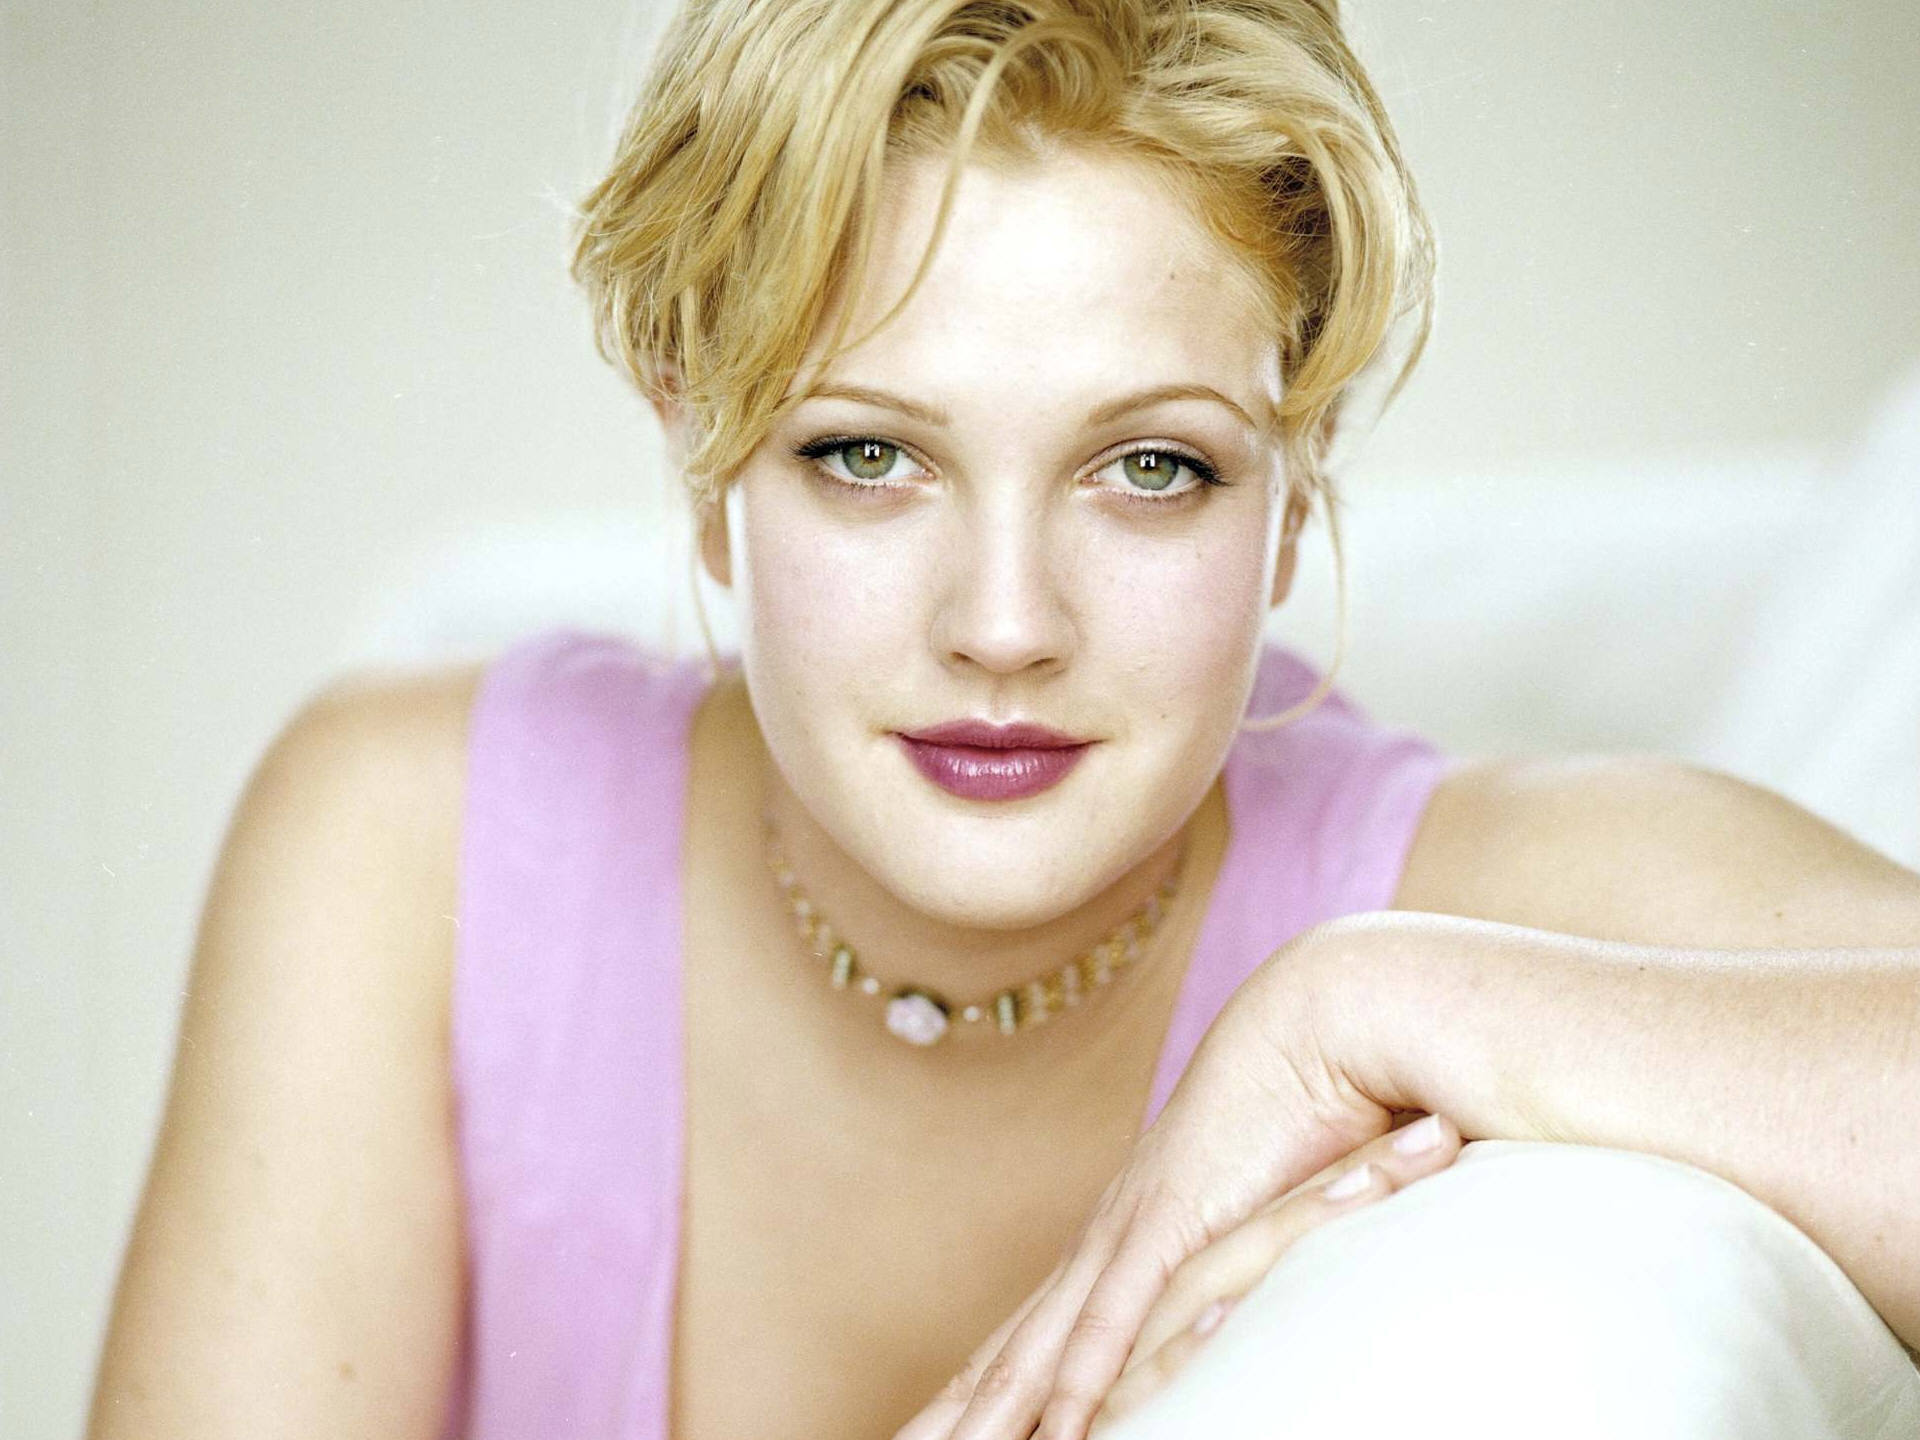 Drew Barrymore images ... Drew Barrymore